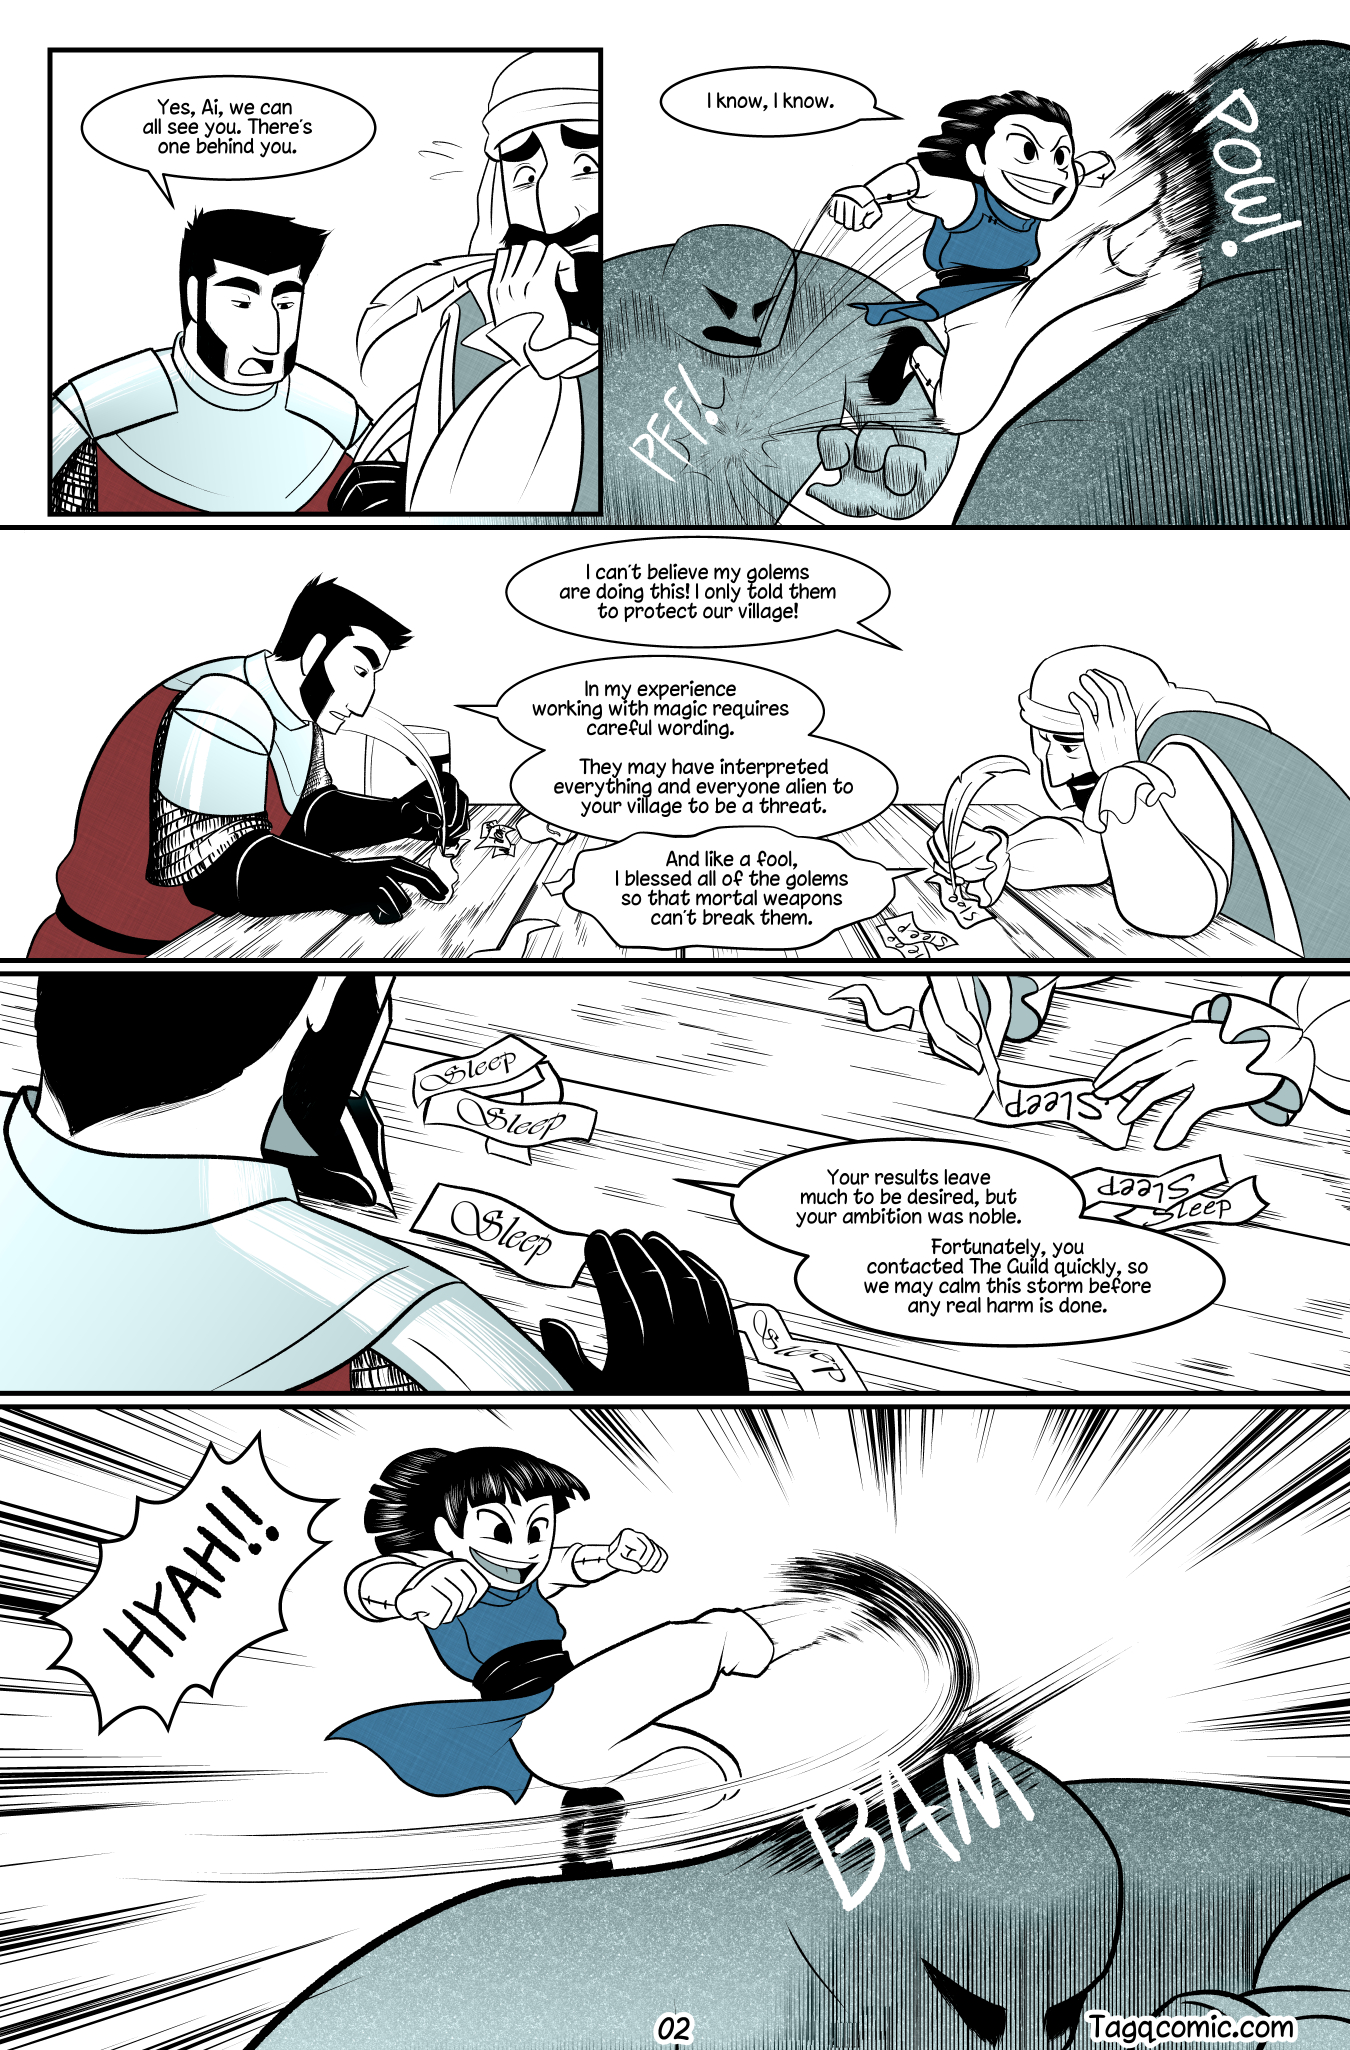 Big Trouble in Little Towns Pg.2